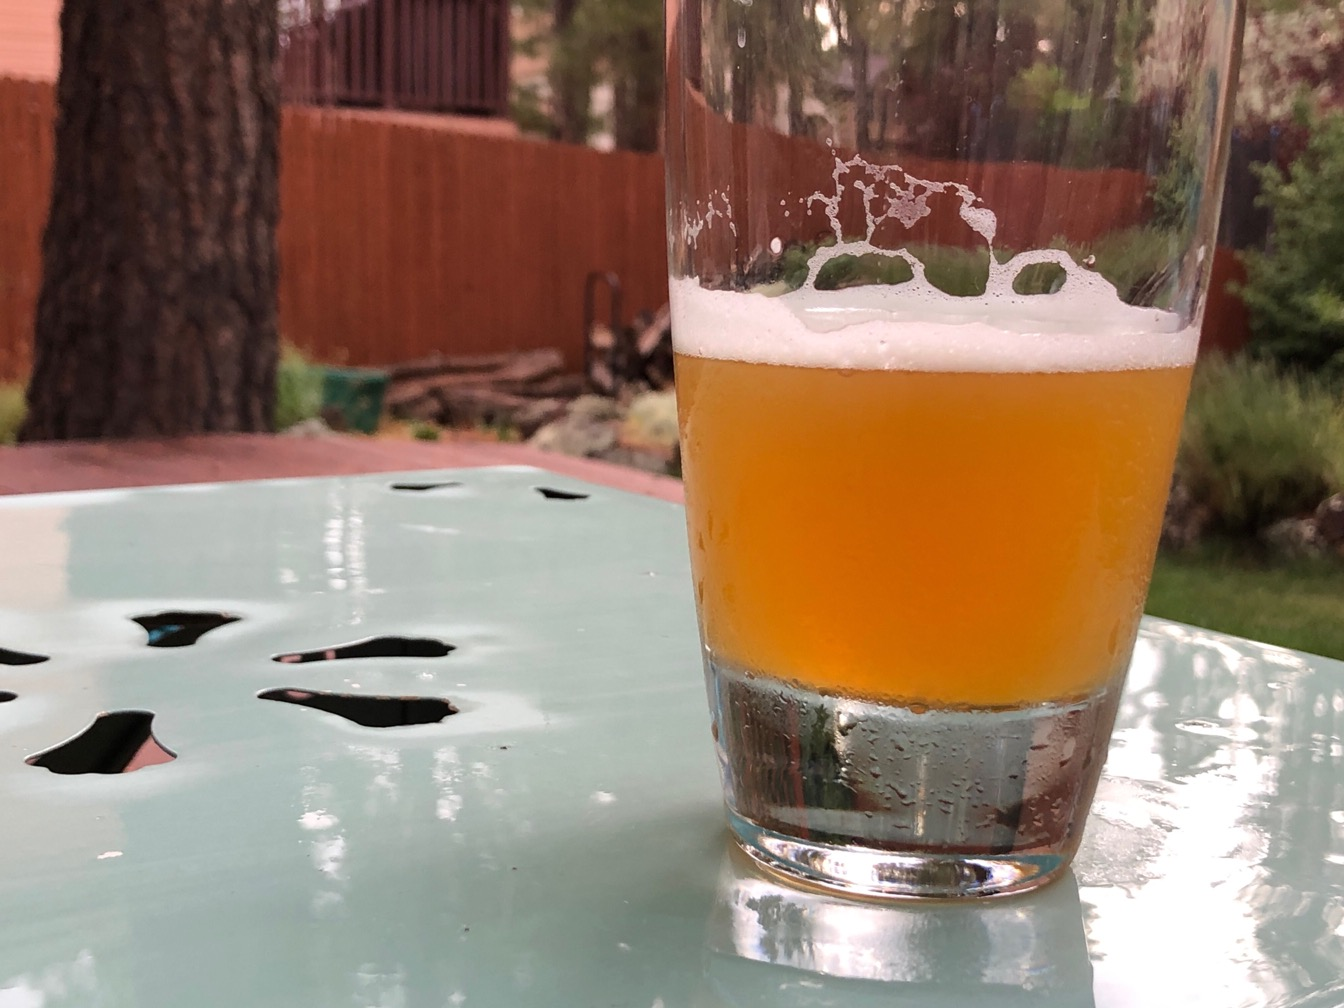 Photo of a glass of beer on a rain-wet table with lawn in the background.